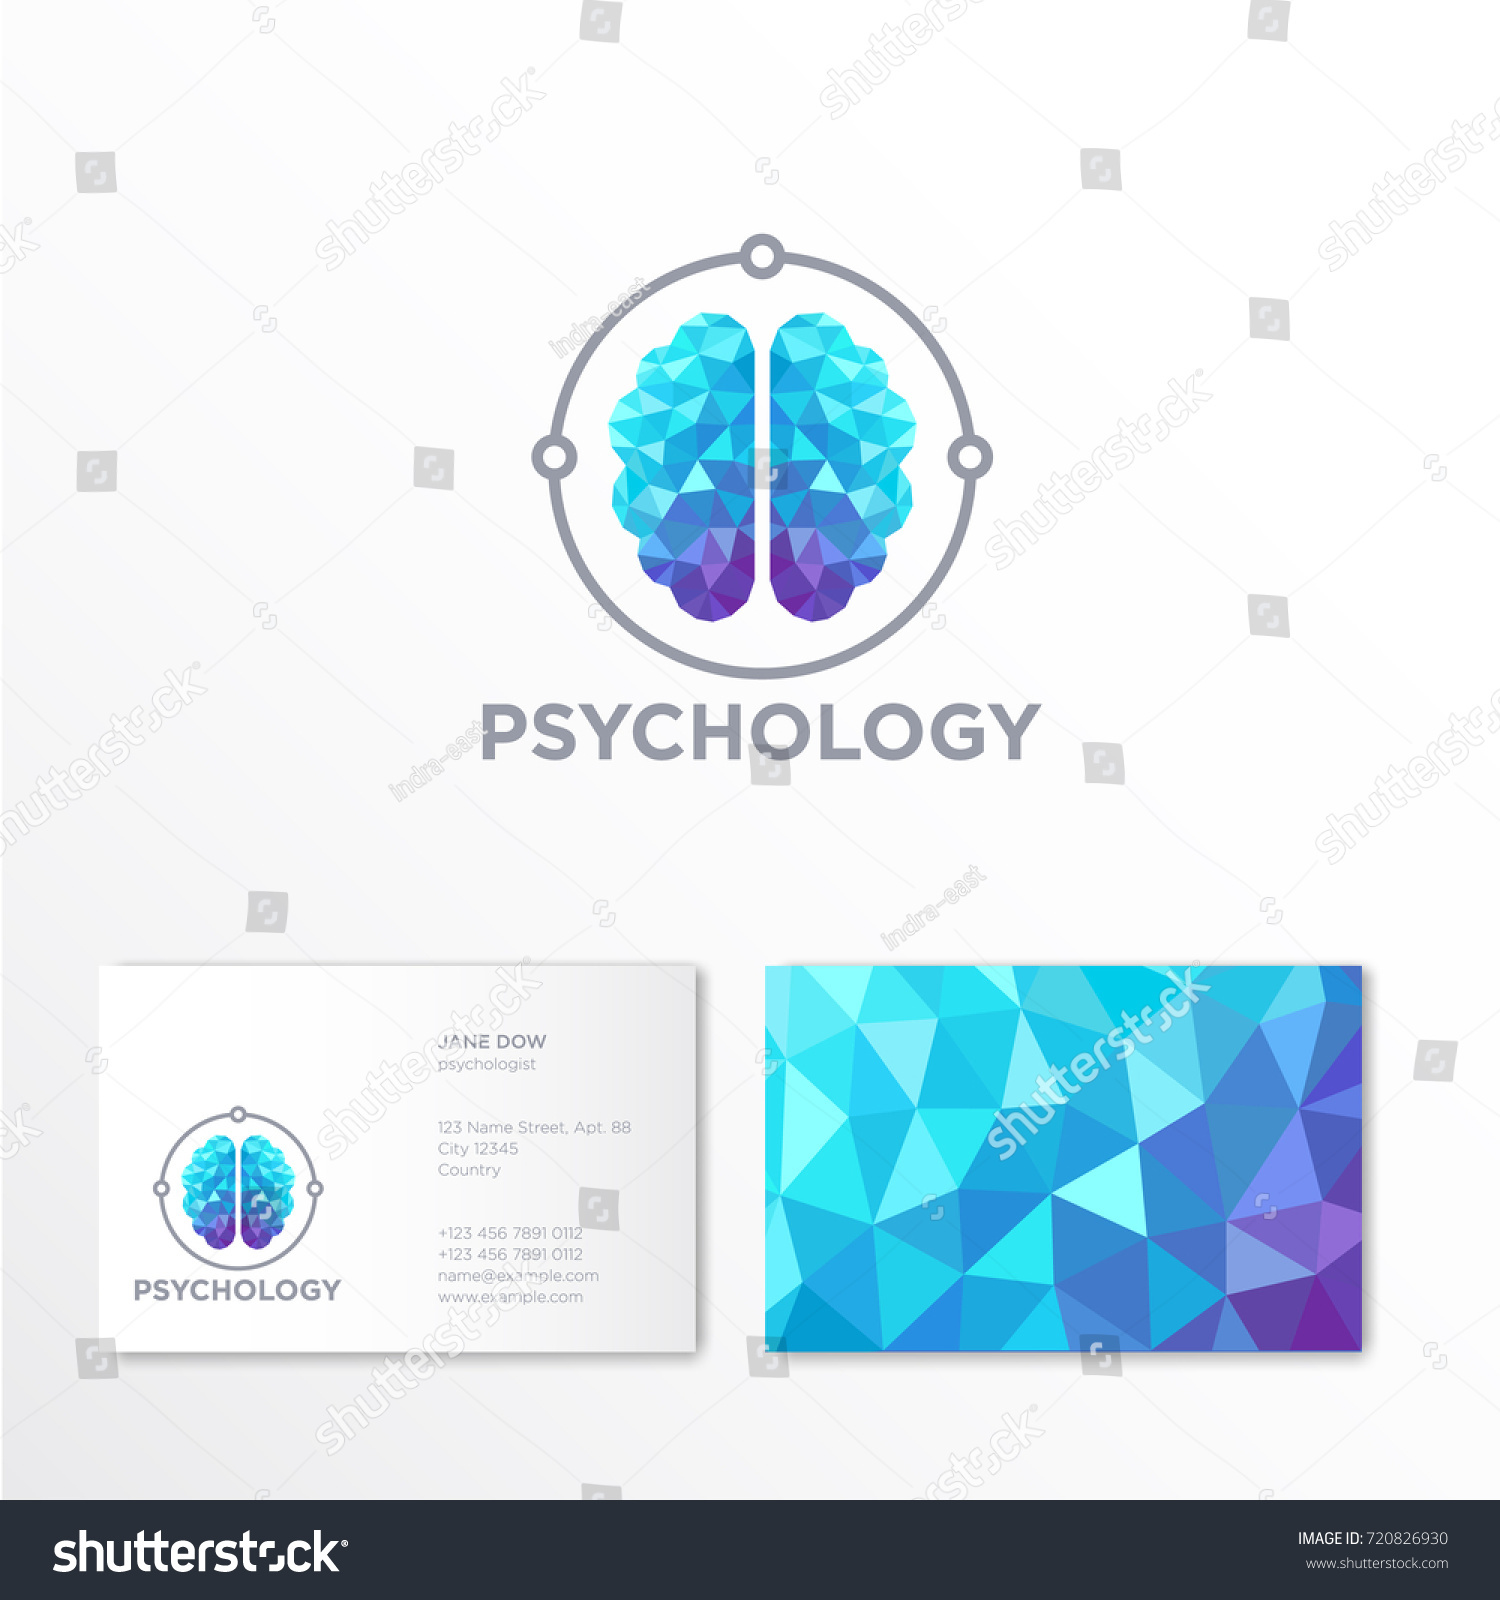 Psychology logo crystal brain emblem identity stock vector psychology logo crystal brain emblem identity business card magicingreecefo Choice Image